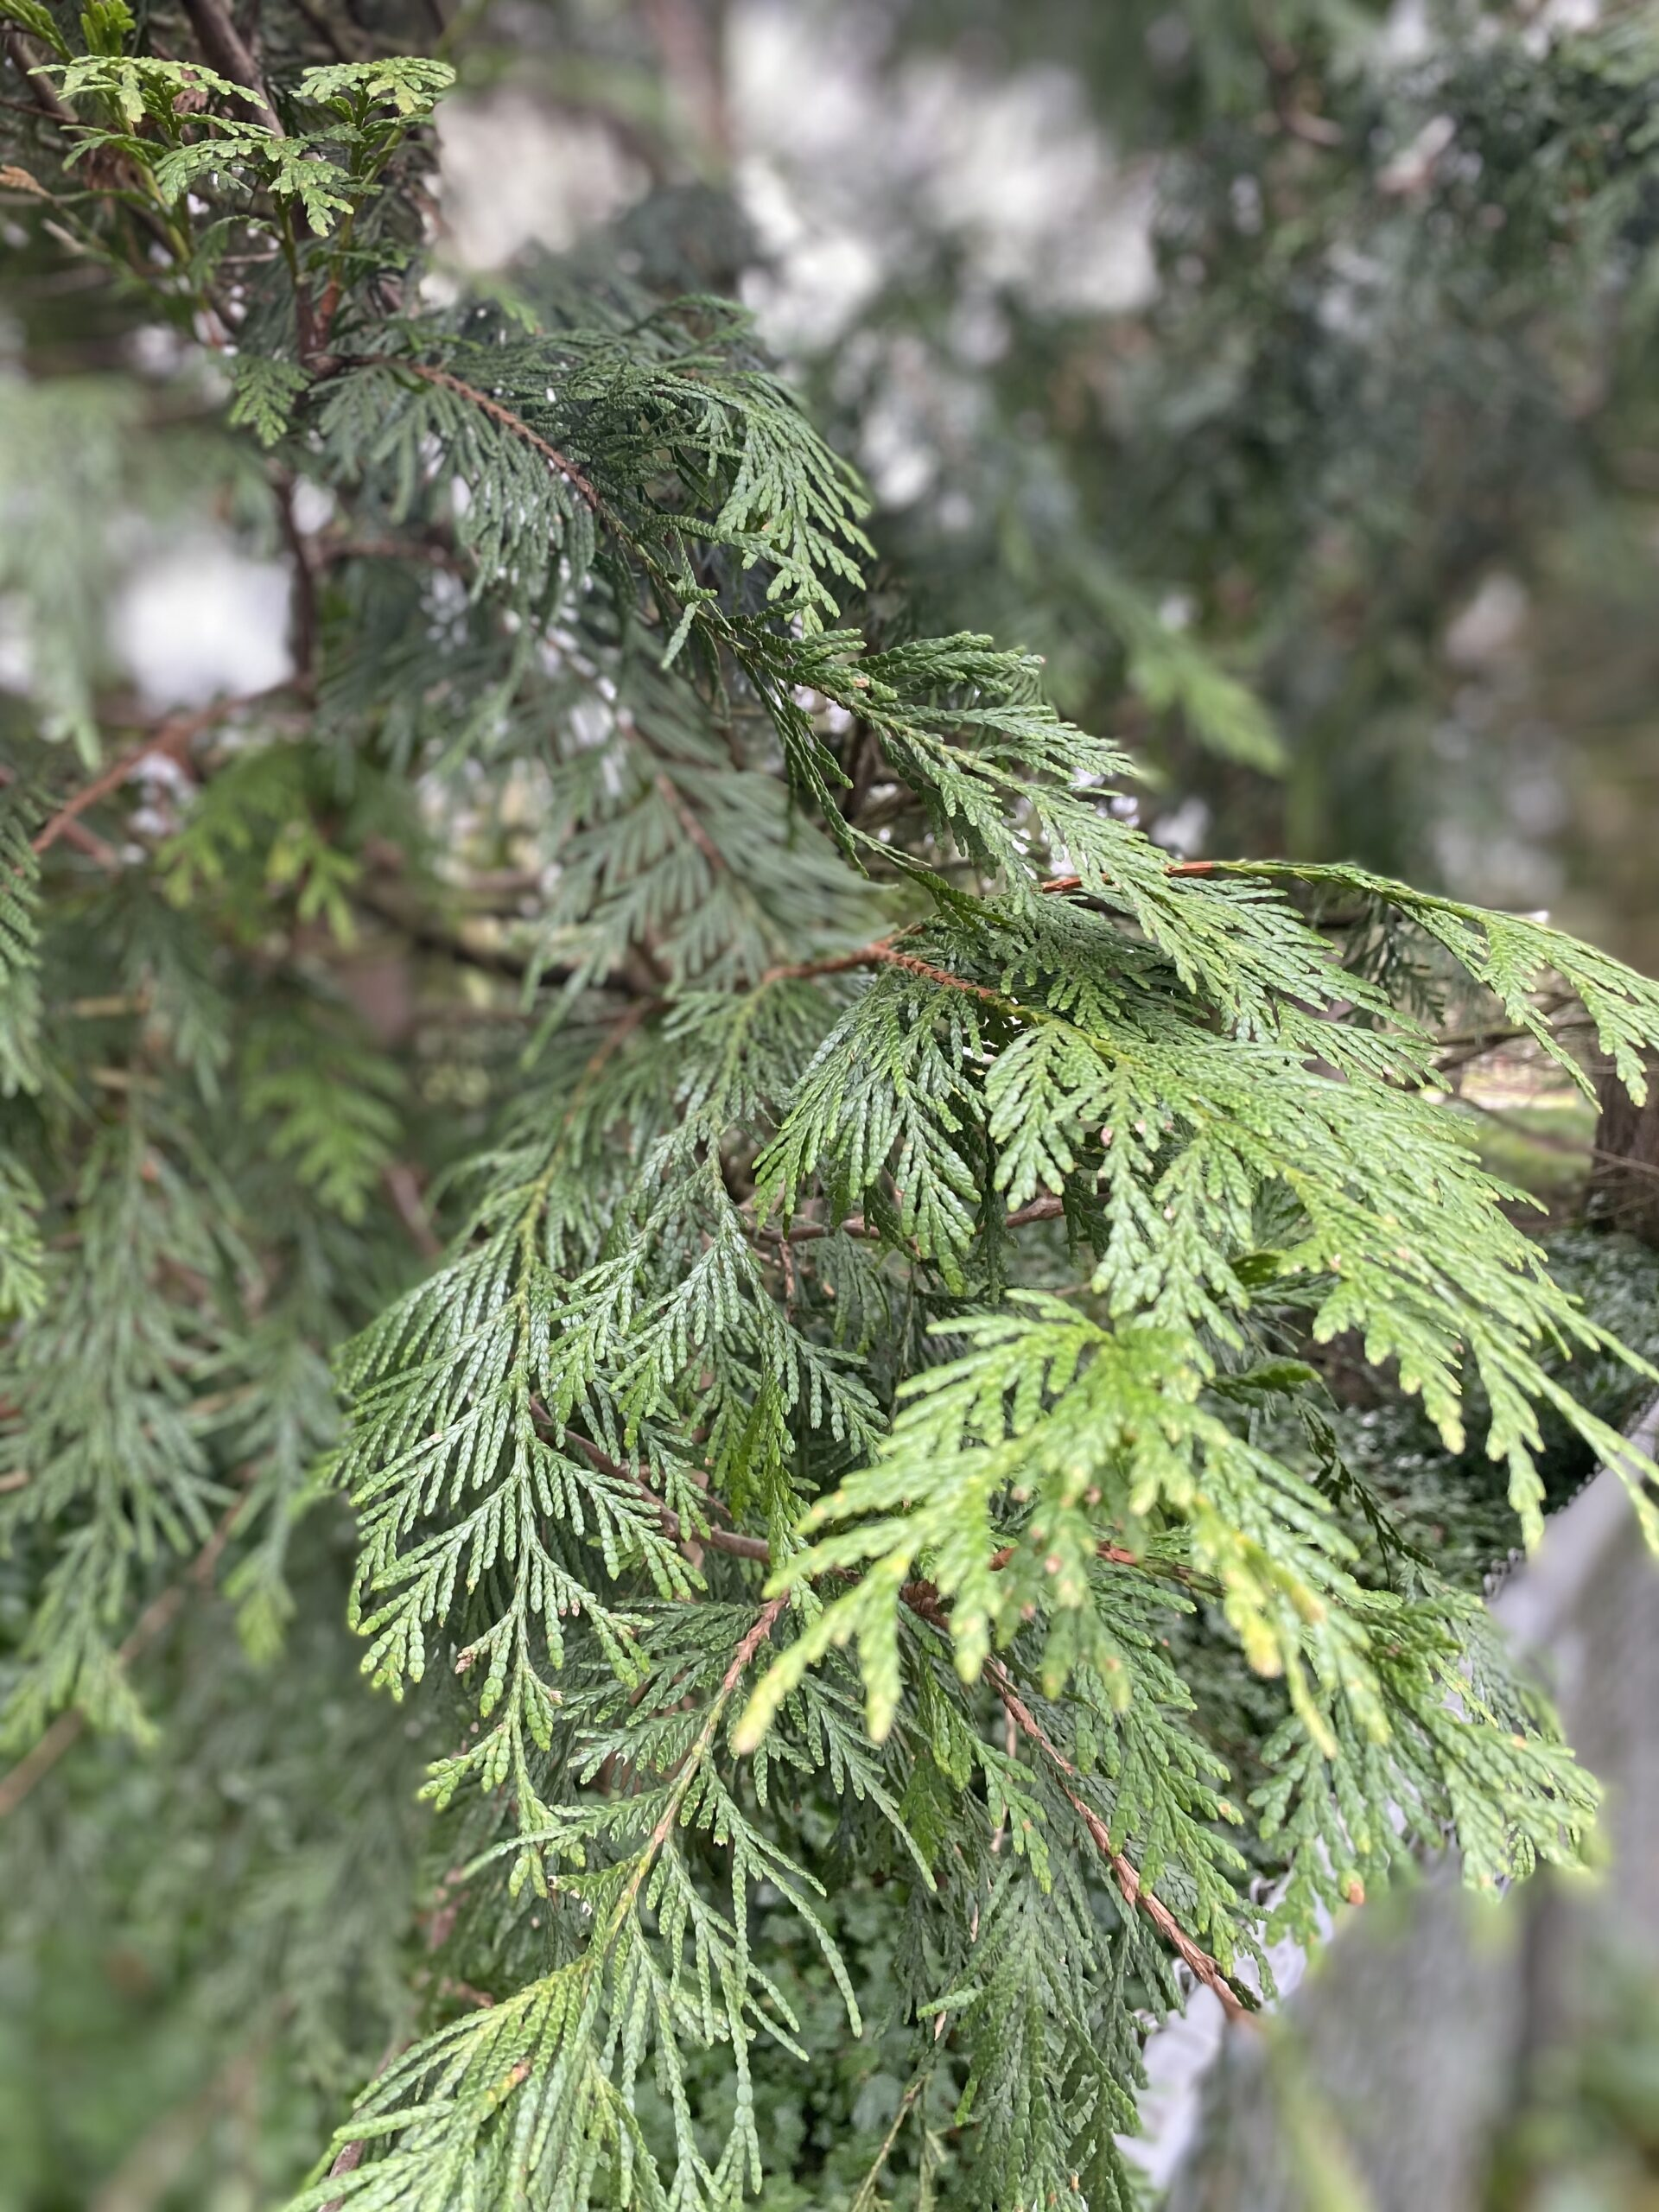 foliage or branchlets of the Western Red cedar